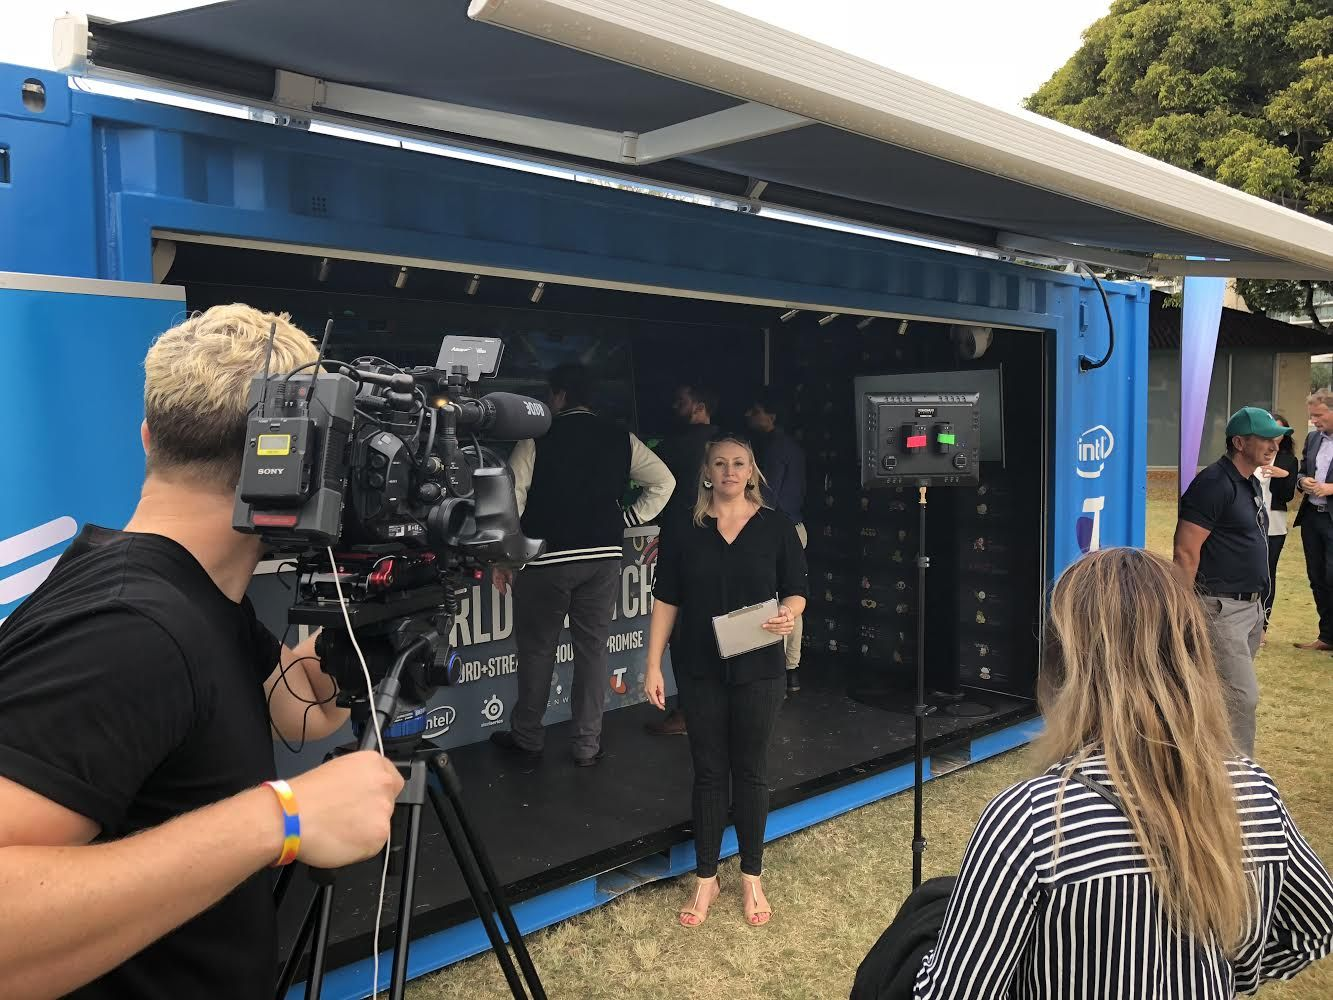 Telstra Intel 5G Internet Booth